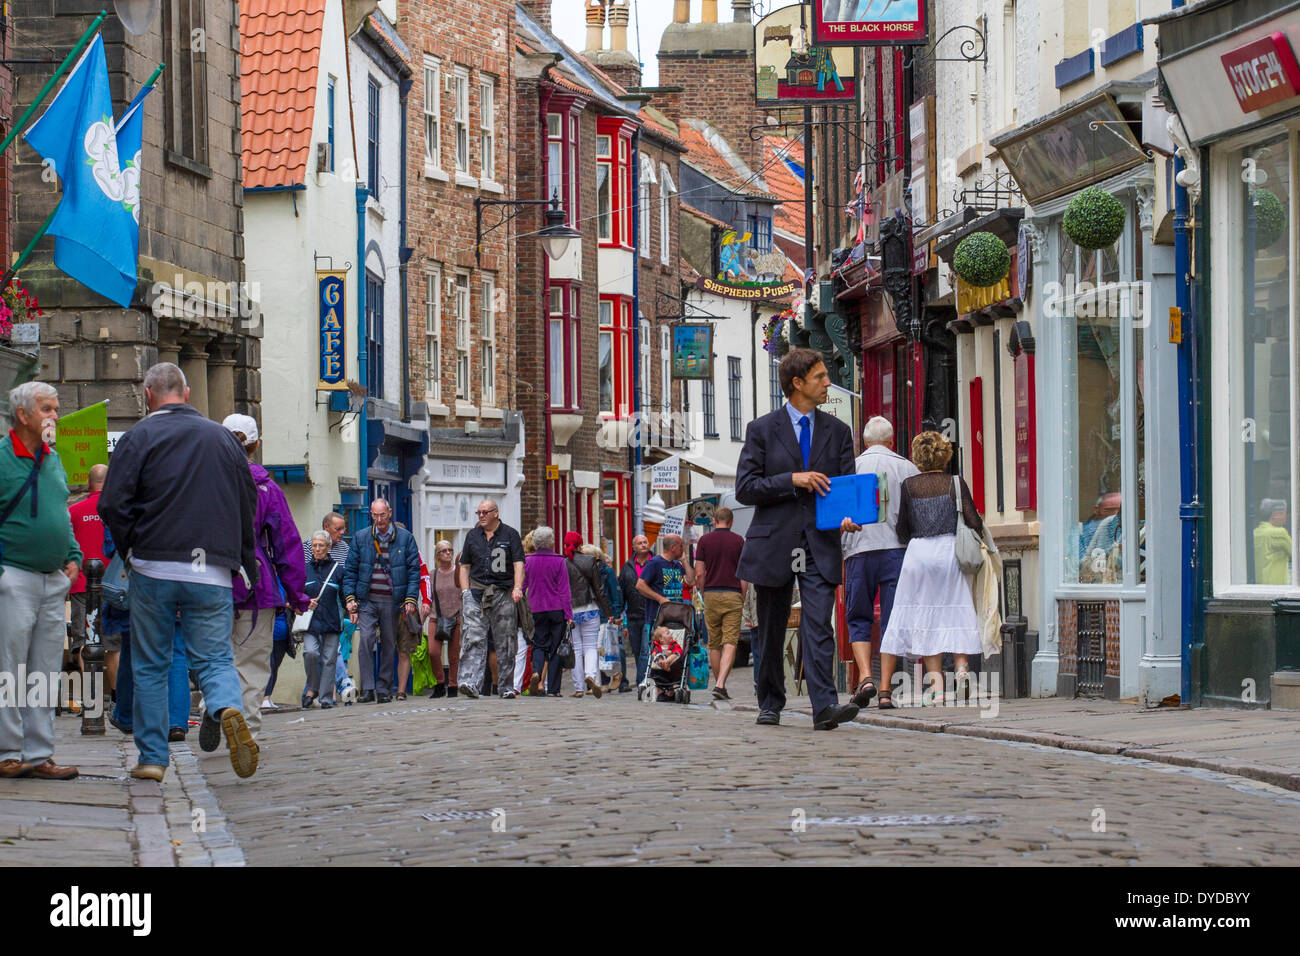 Crowds of holidaymakers in Whitbys narrow streets. - Stock Image